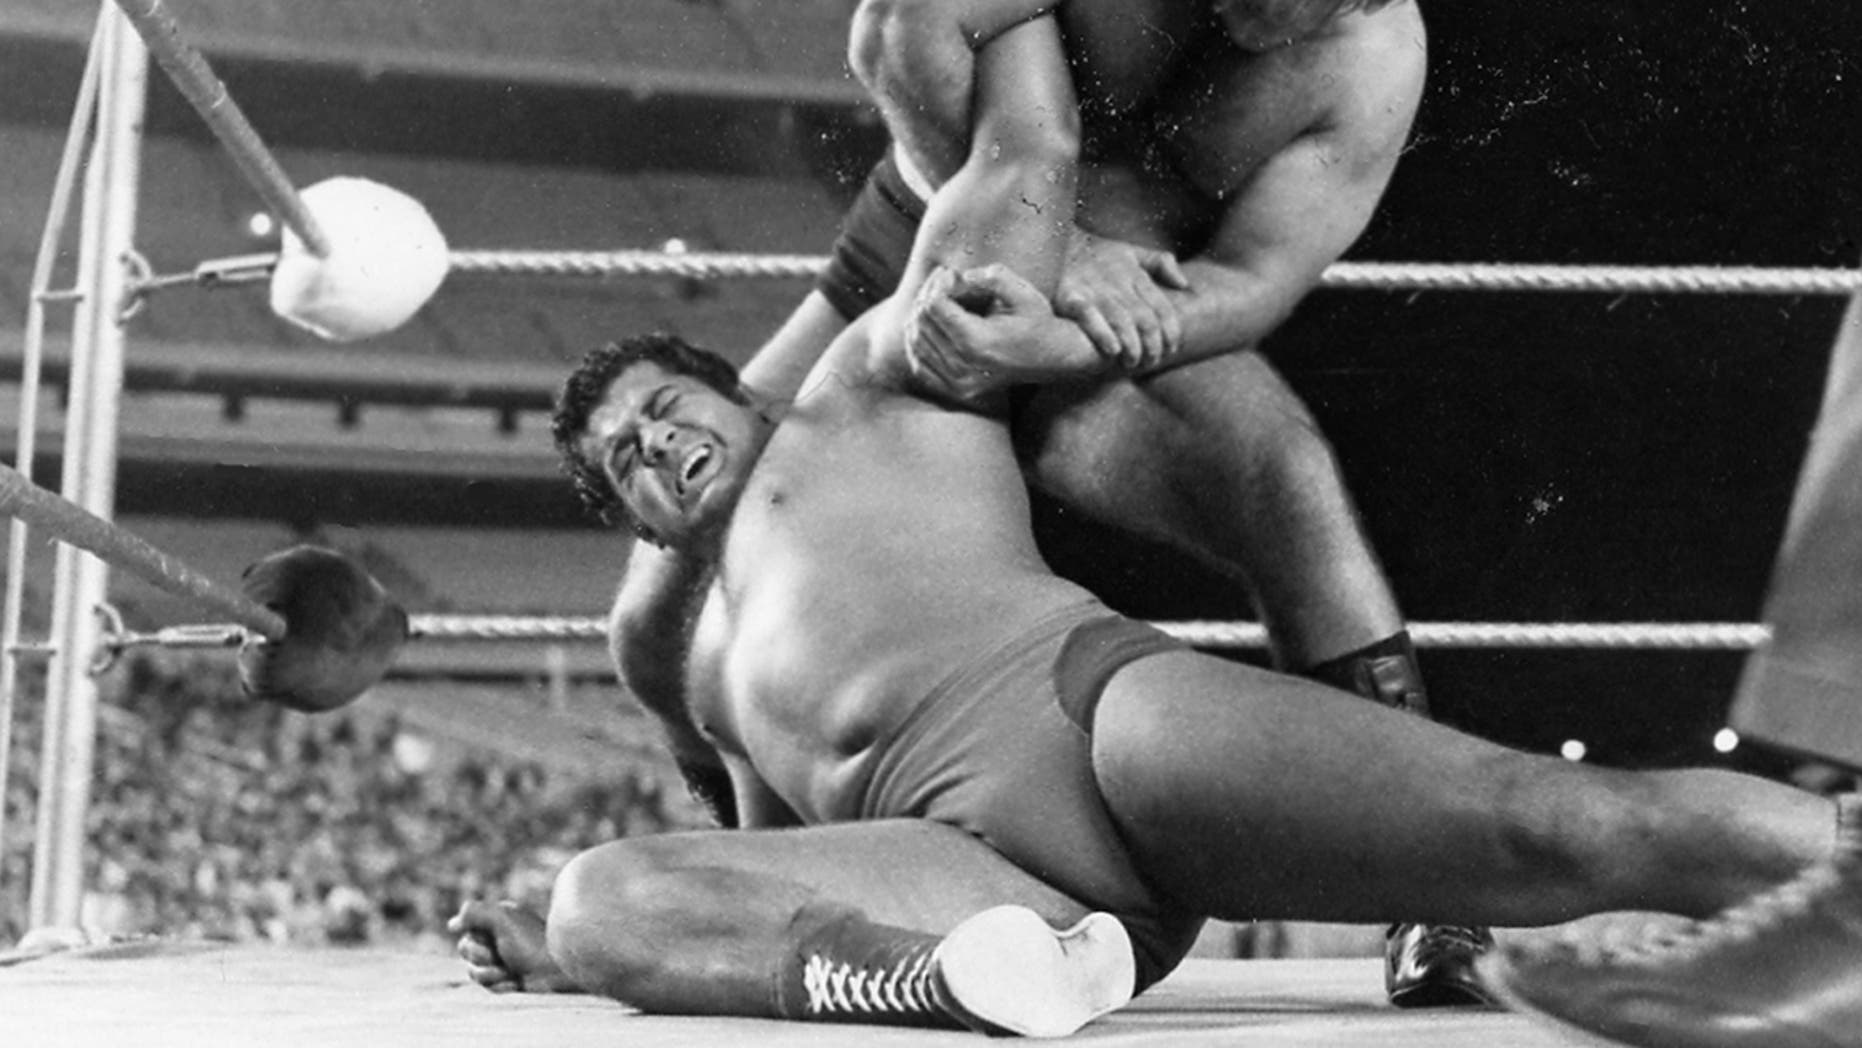 Former WWF champion Pedro Morales dies at age 76 Bruno Sammartino and Pedro Morales fight at Shea Stadium on September 30, 1972. Credit: George Napolitano / MediaPunch / IPX